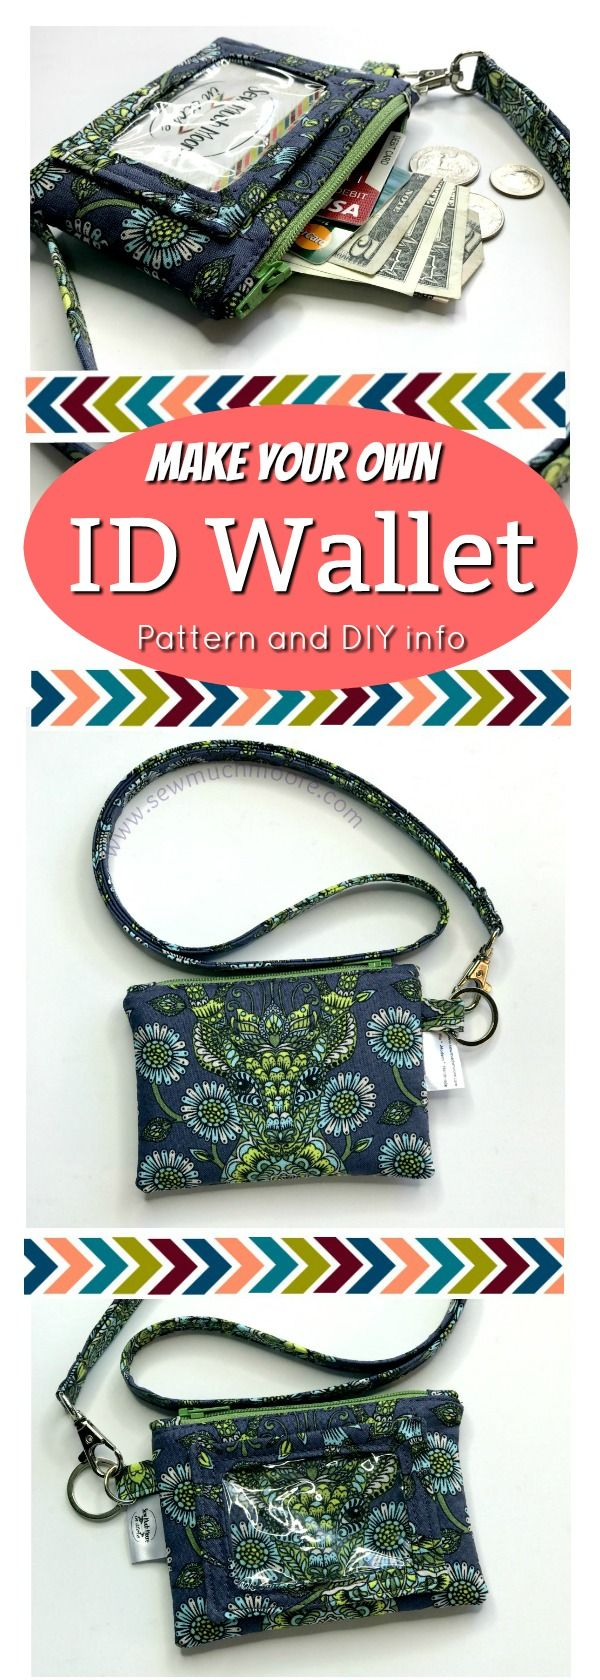 Make your own ID Wallet with detachable lanyard.  Get your sewing pattern plus tips and tricks!